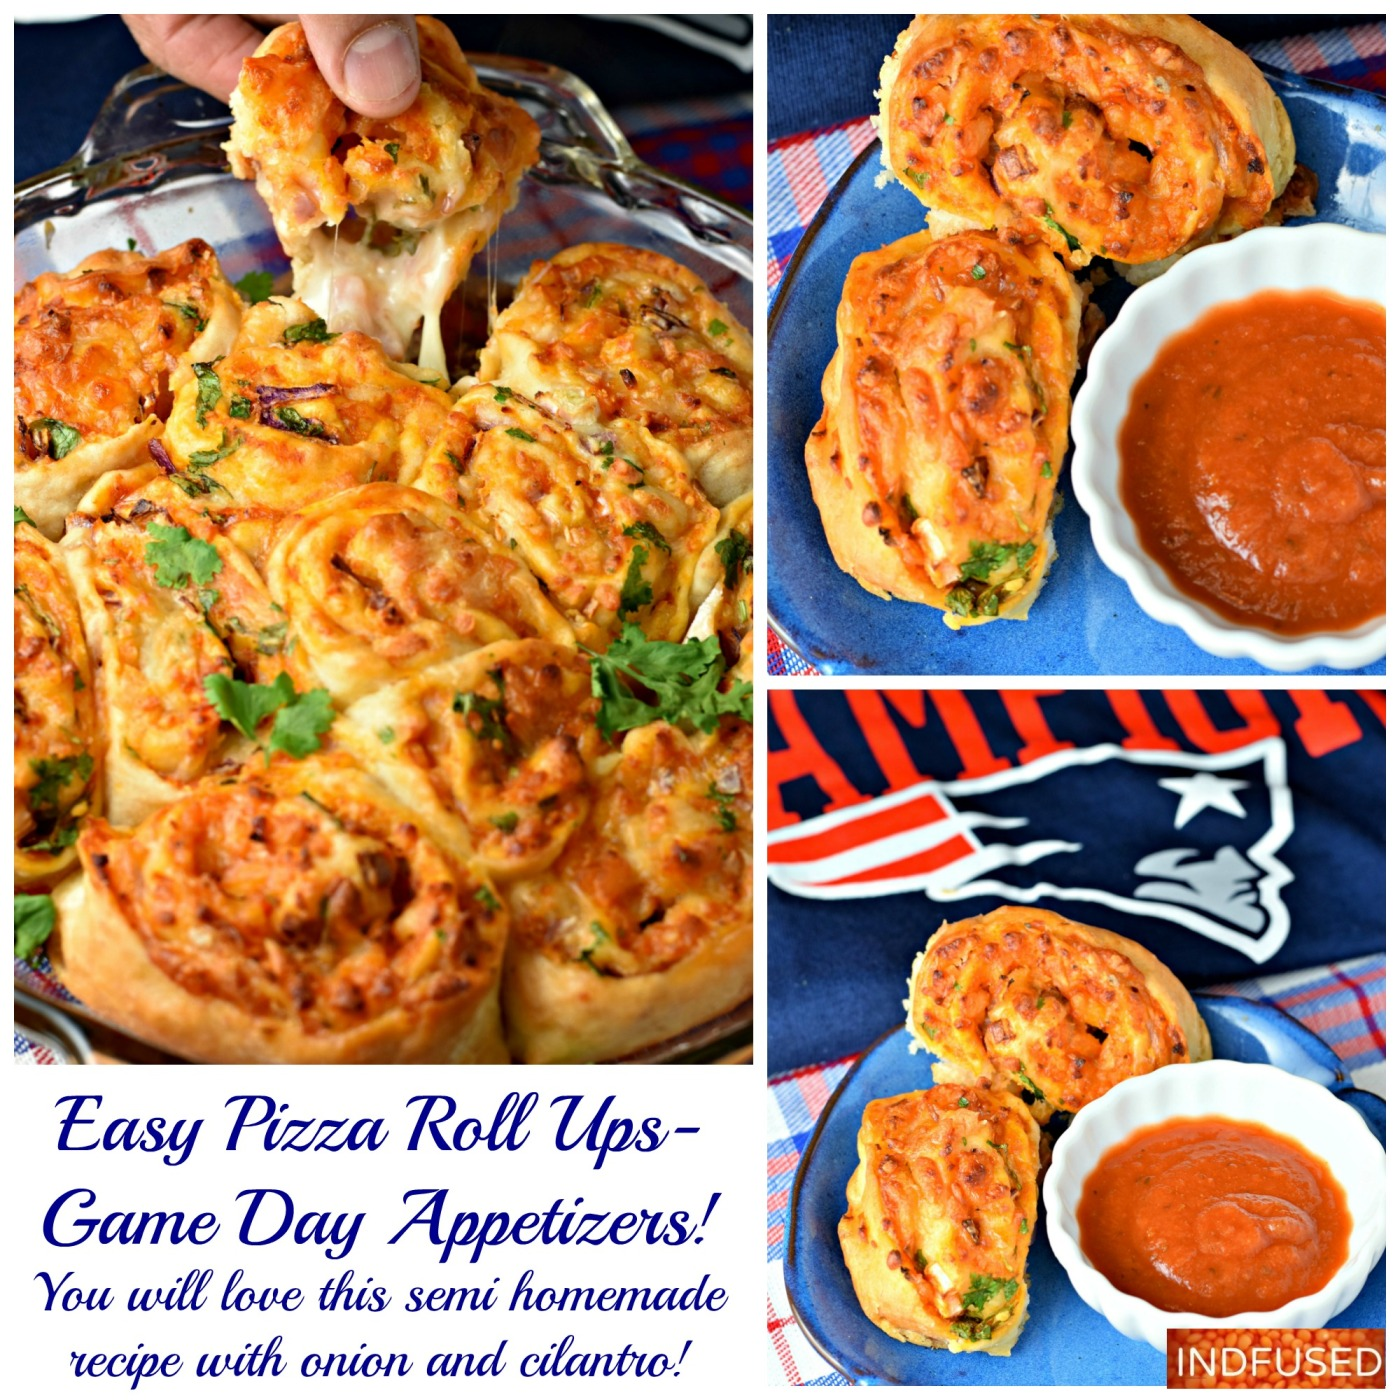 Easy recipe for pizza roll ups using #bettycrockerpizzacrust and #trdaerjoesmarinarasauce